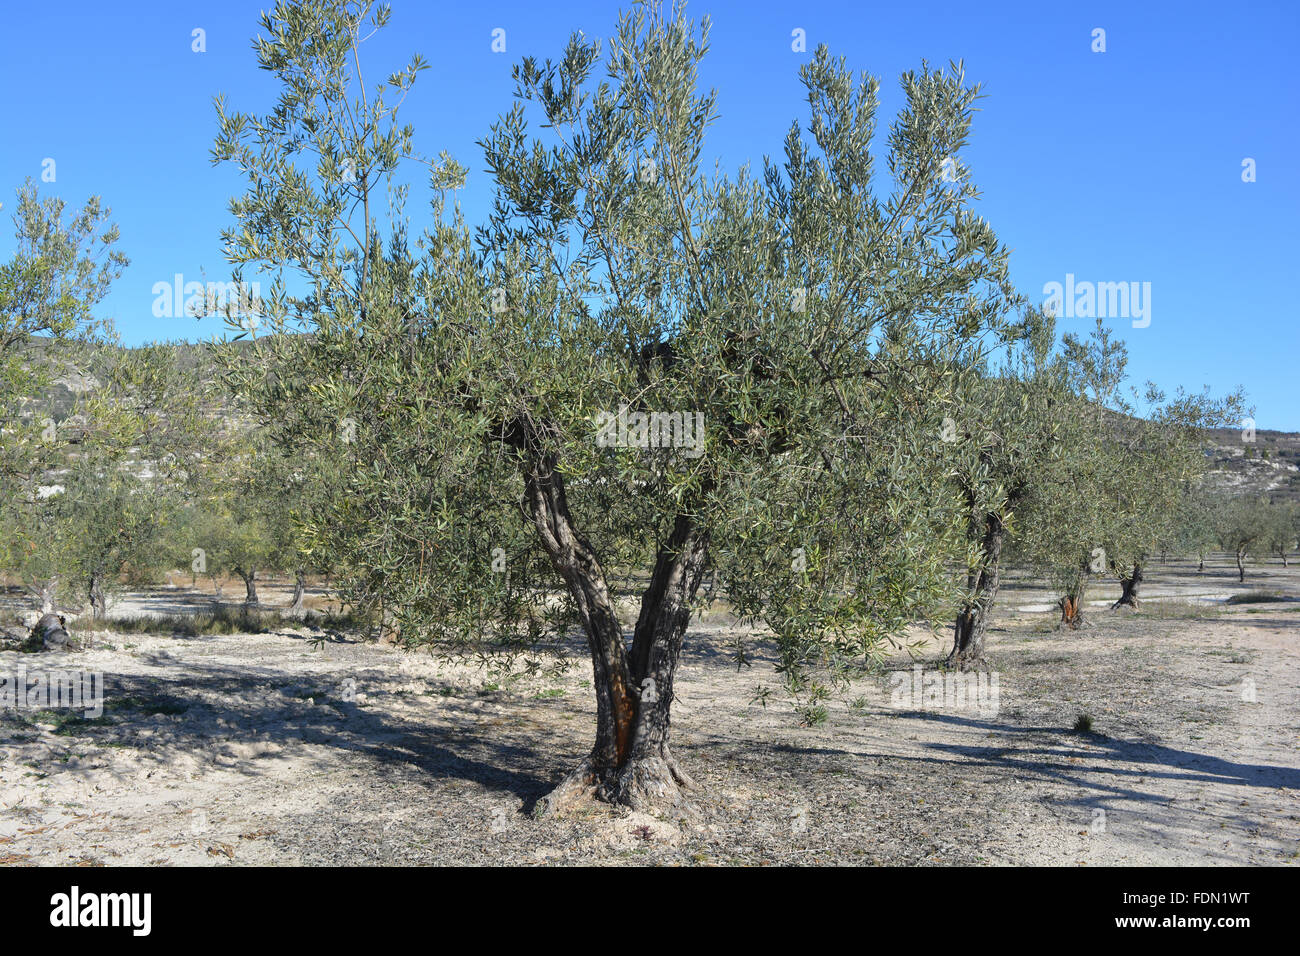 Olive trees, near Balones, Alicante Province, Valenica, Spain - Stock Image